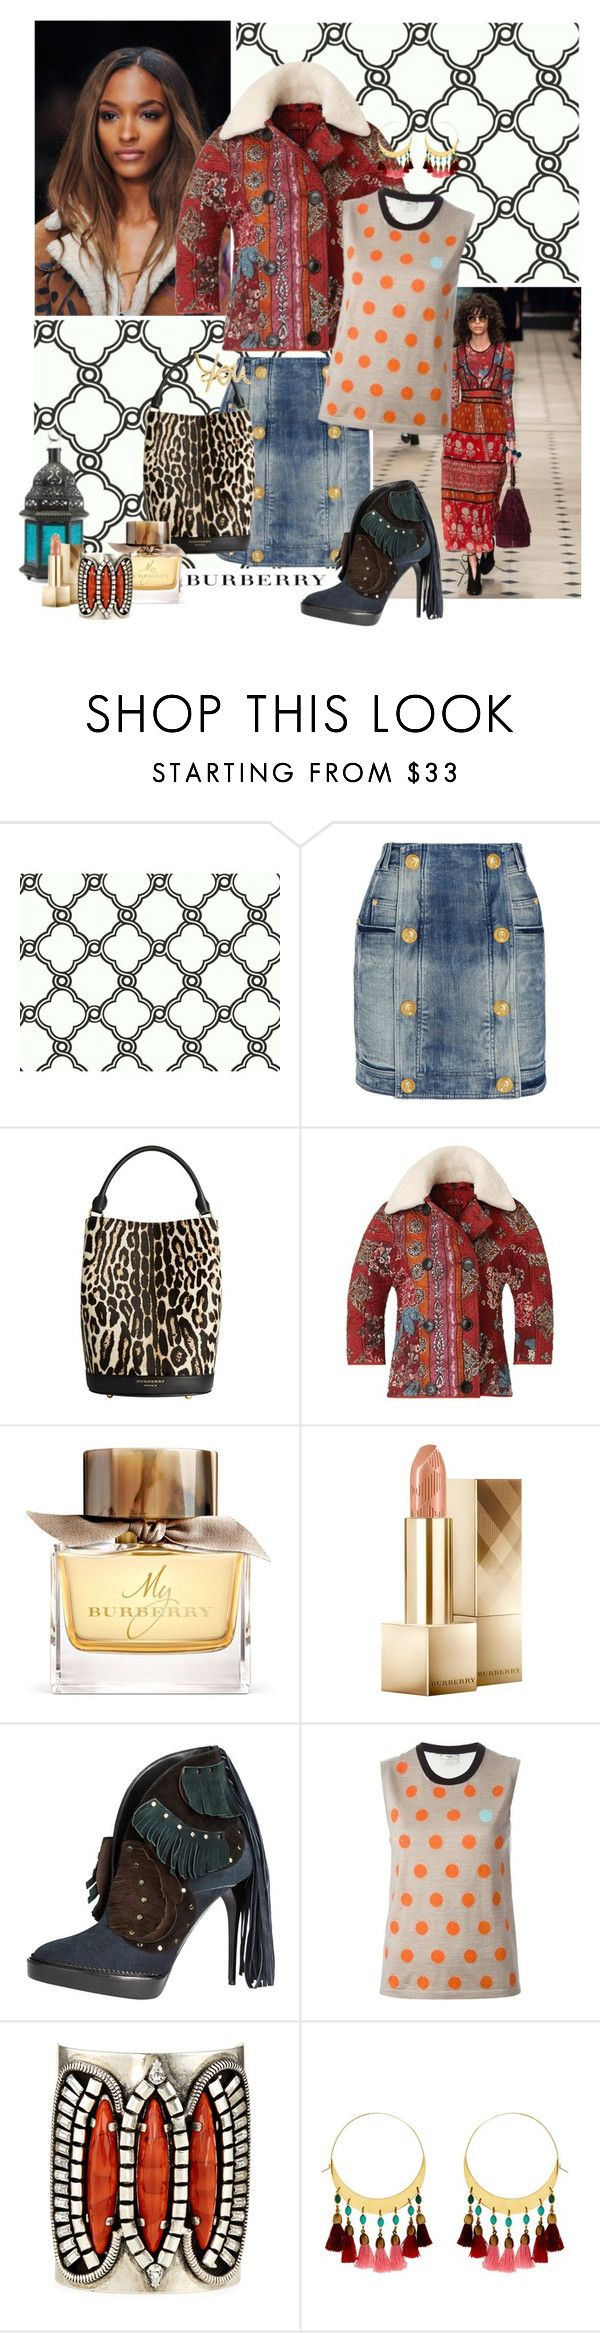 Inspired by Burberry 2015 by gilleyqwyn on Polyvore featuring Fendi, Burberry, Balmain, DANNIJO, Isabel Marant, Lanvin and York Wallcoverings